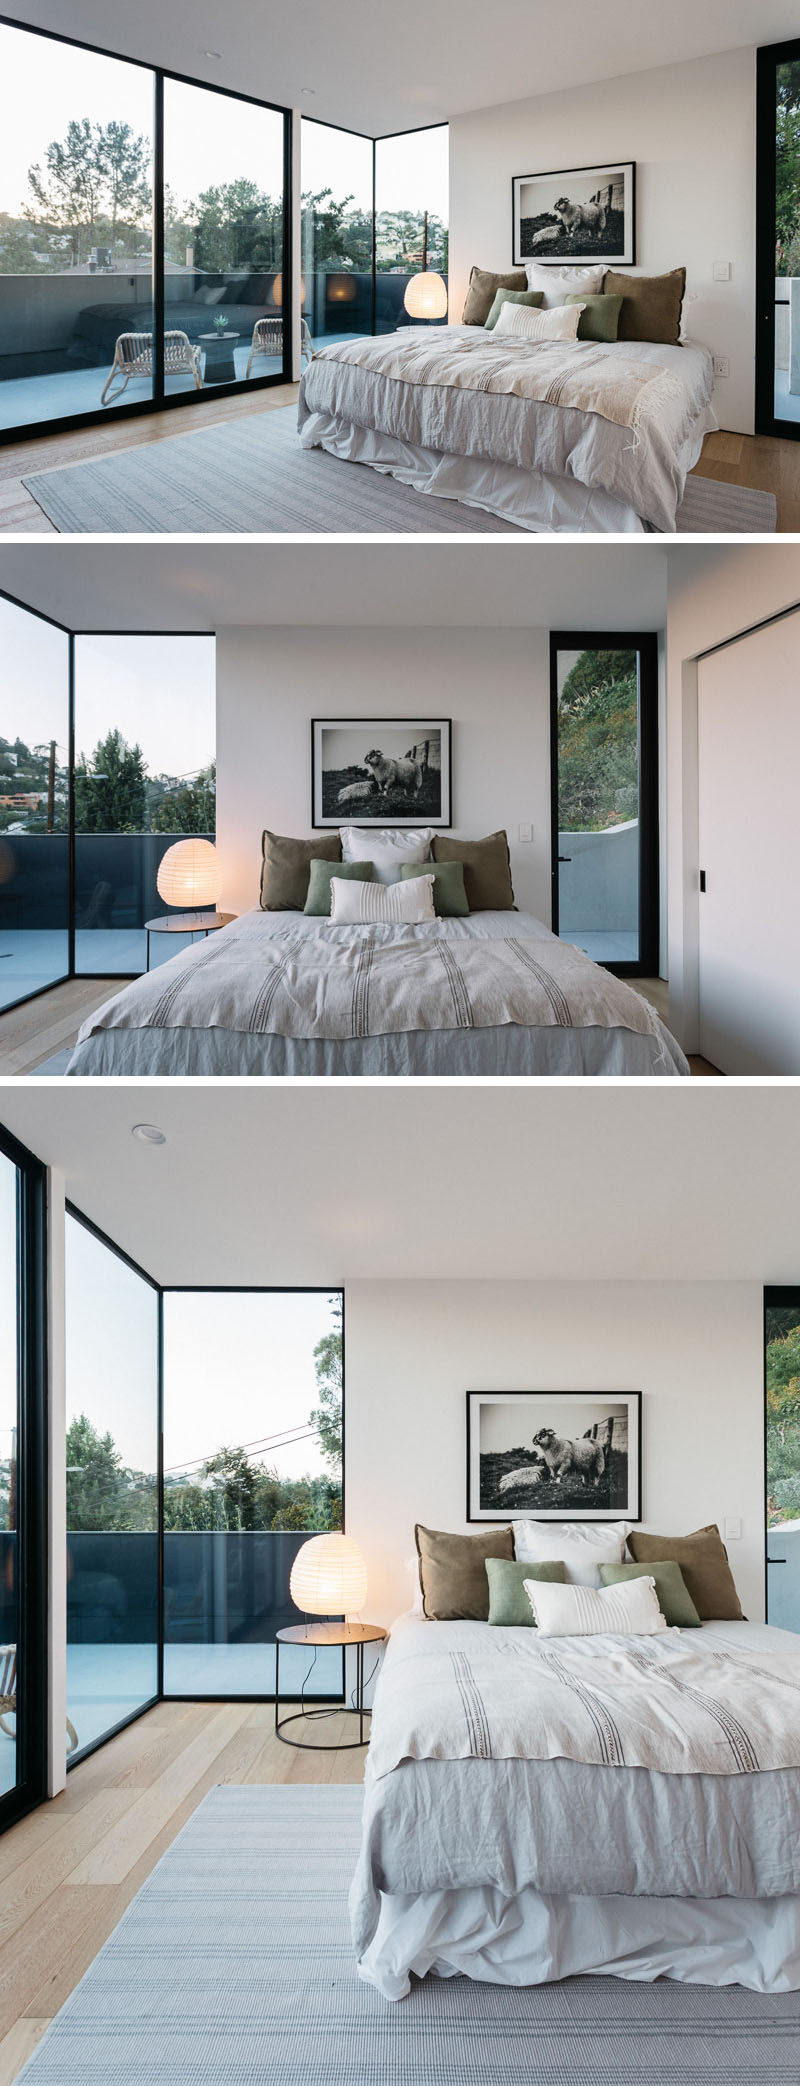 In this modern master bedroom there are floor-to-ceiling, black-framed windows that flood the room with light.  #ModernBedroom #Windows #MasterBedroom